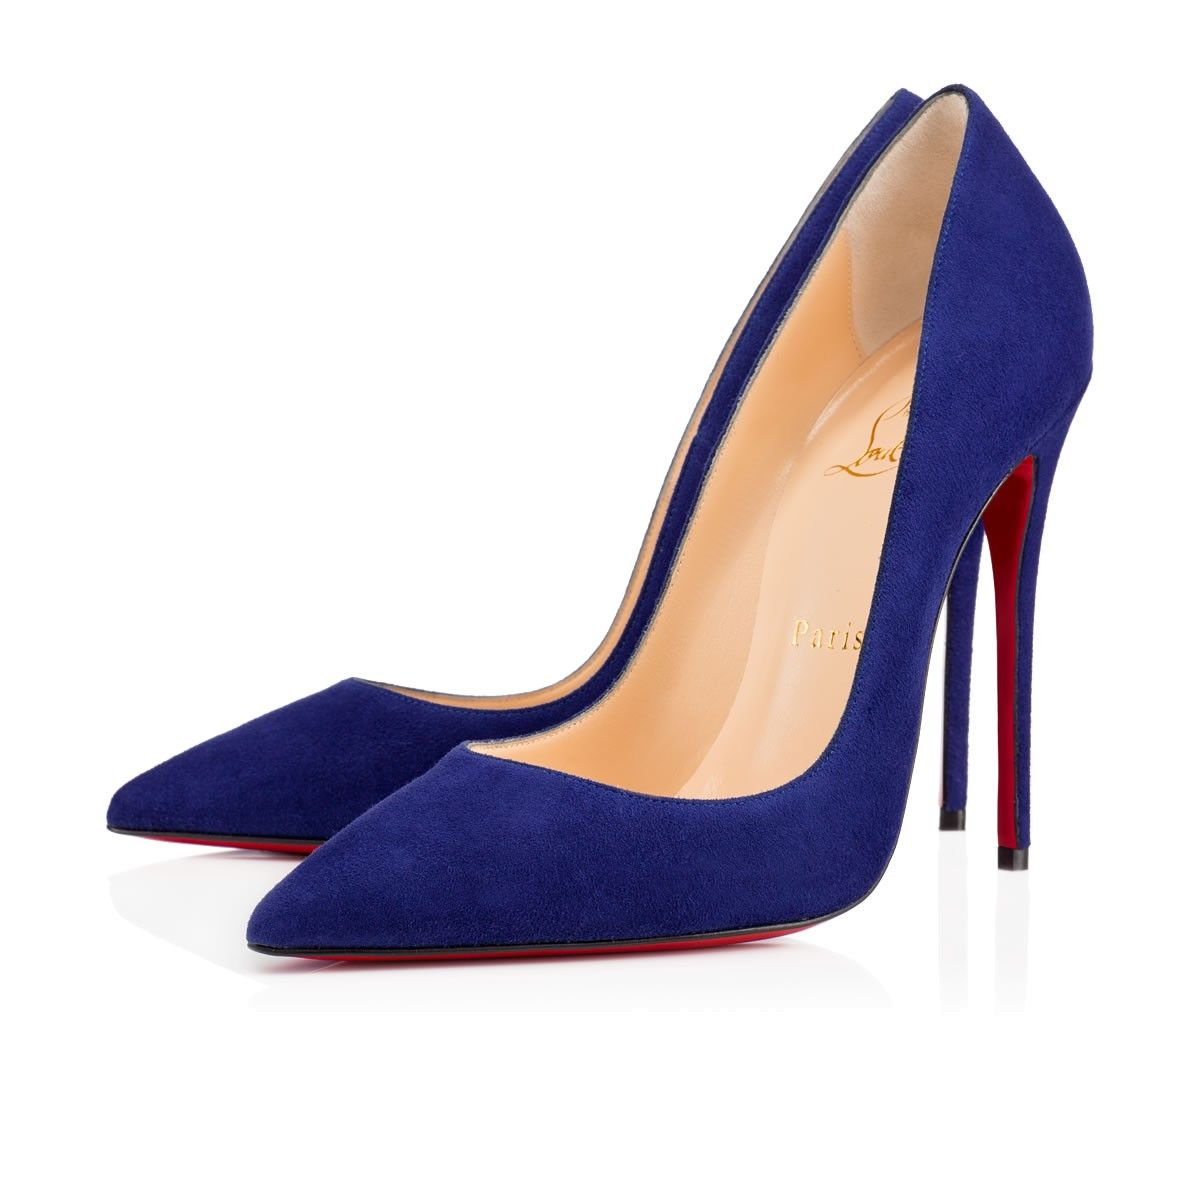 3b6531743e6 So Kate 120mm Black Leather in 2019 | Shoesss | Christian louboutin ...